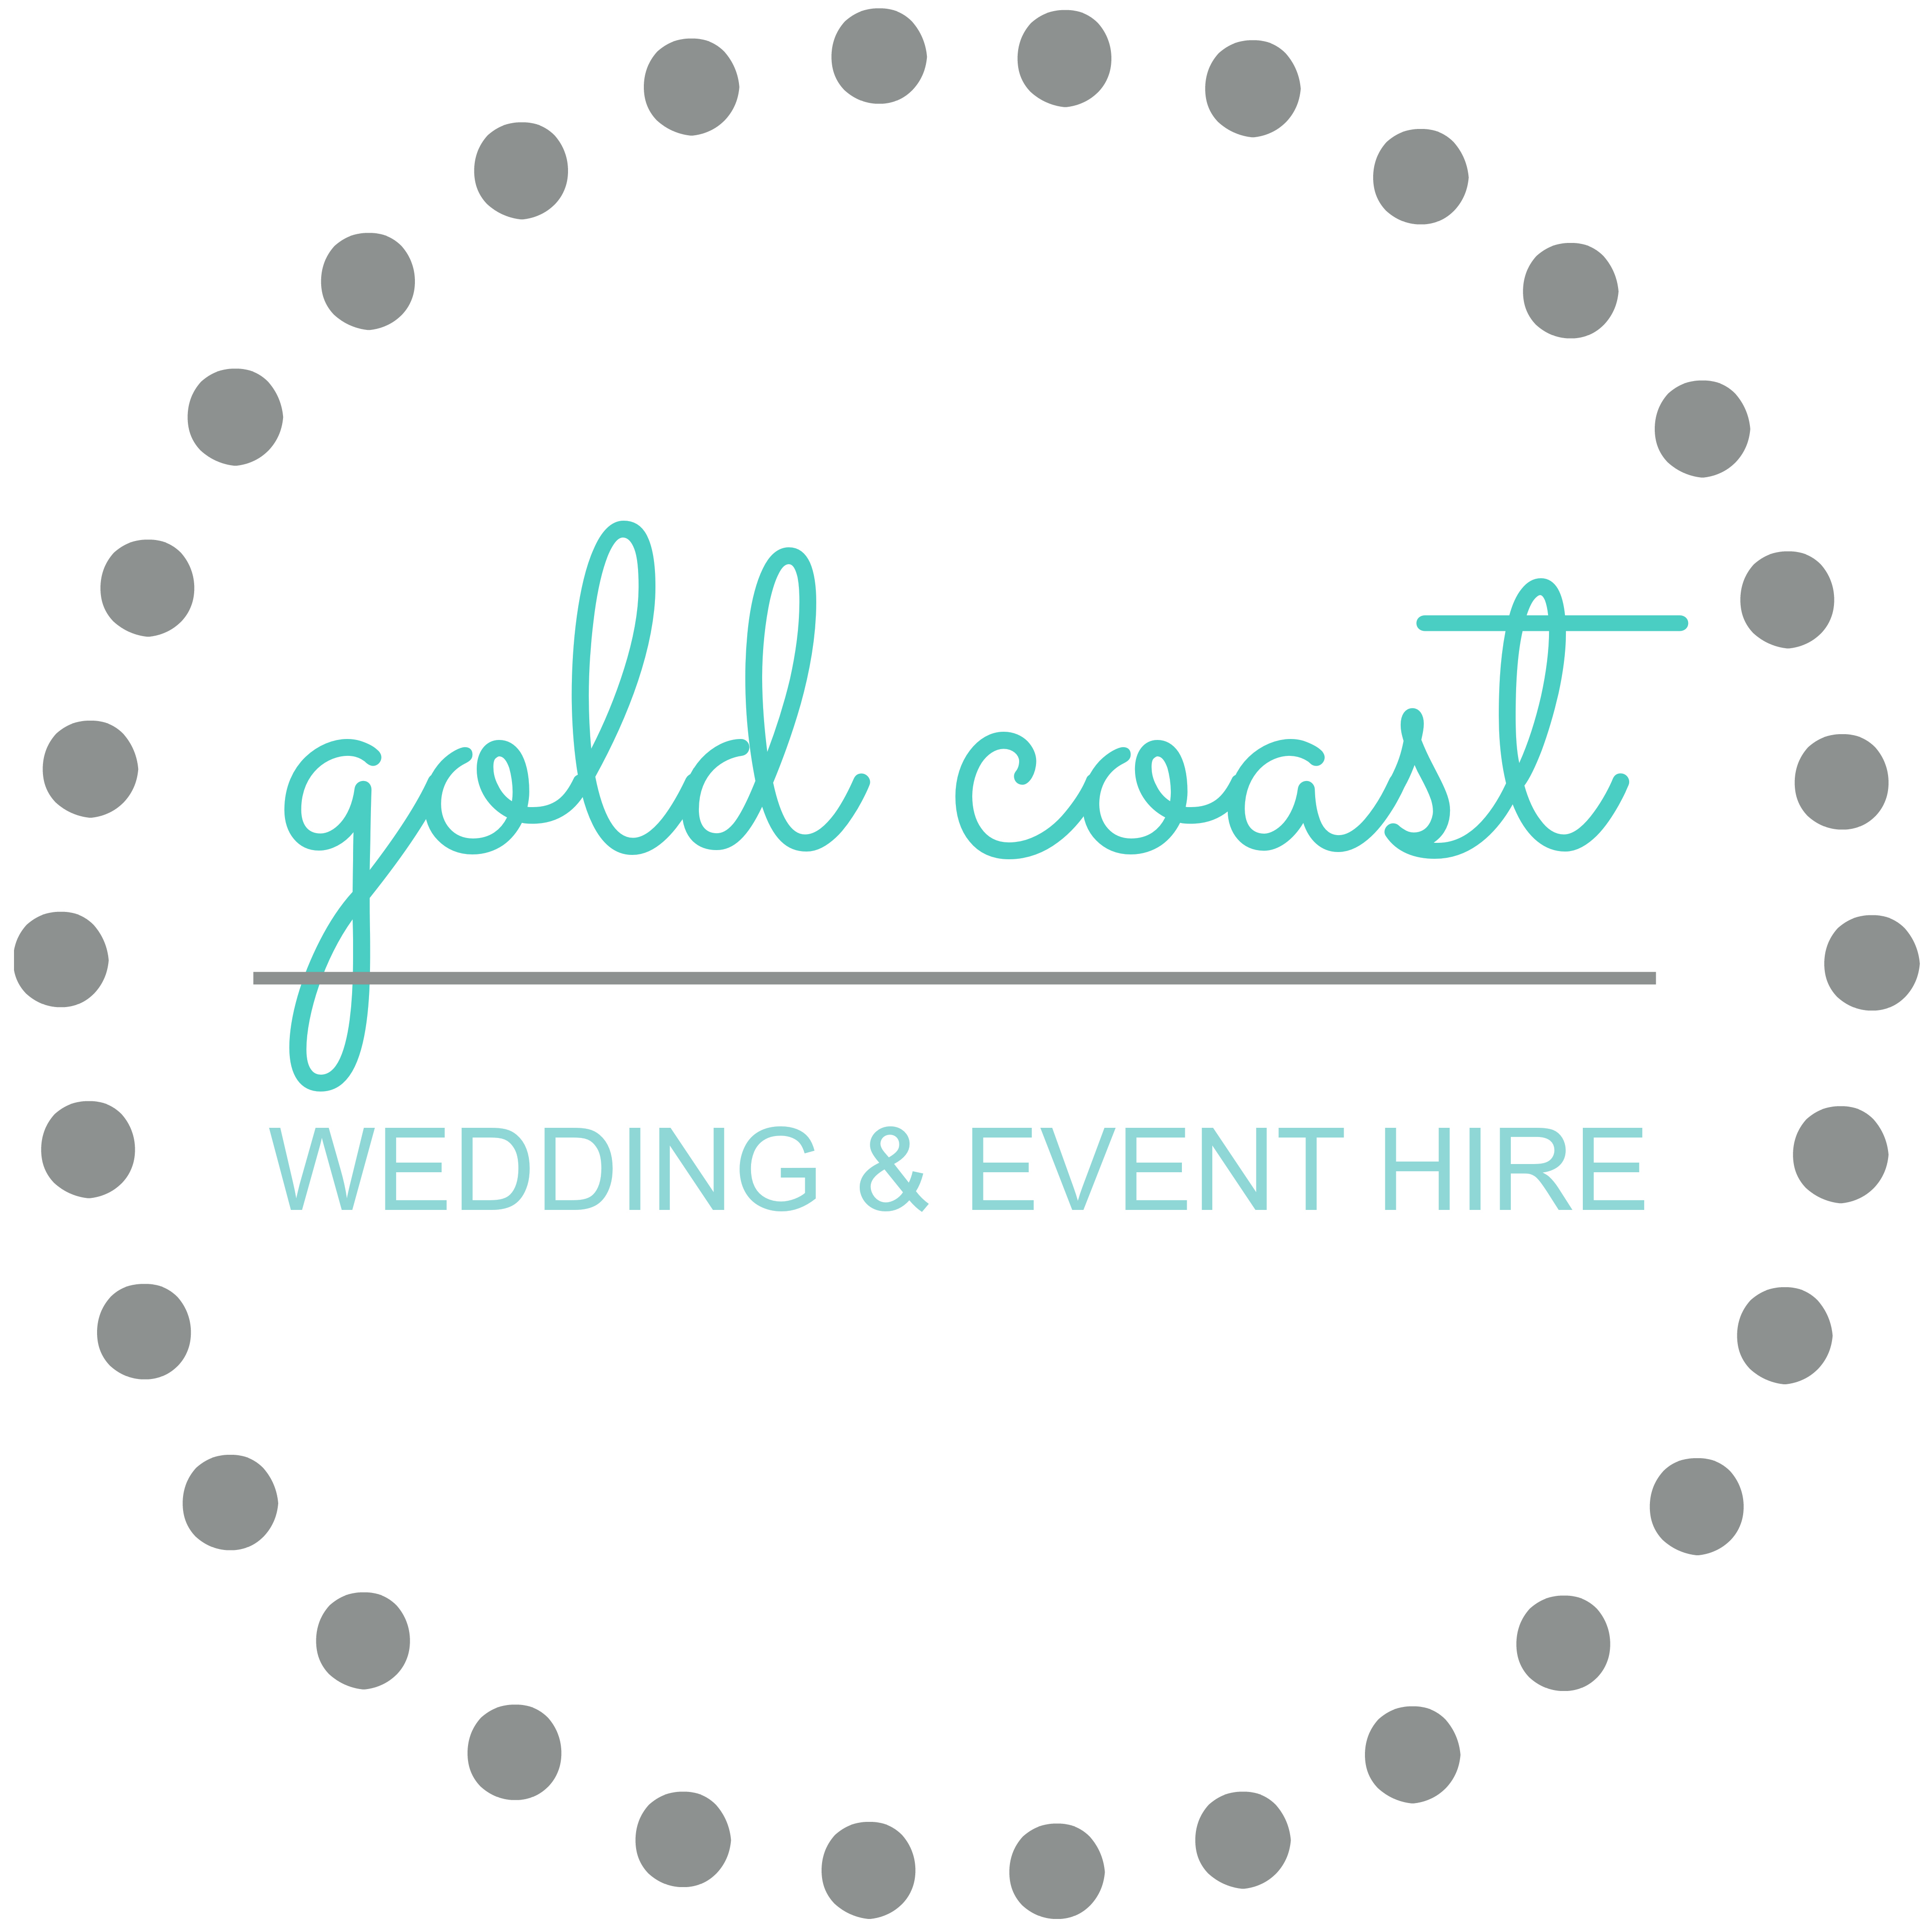 Directory of wedding decoration lighting vendors in australia directory of wedding decoration lighting vendors in australia bridestory junglespirit Images